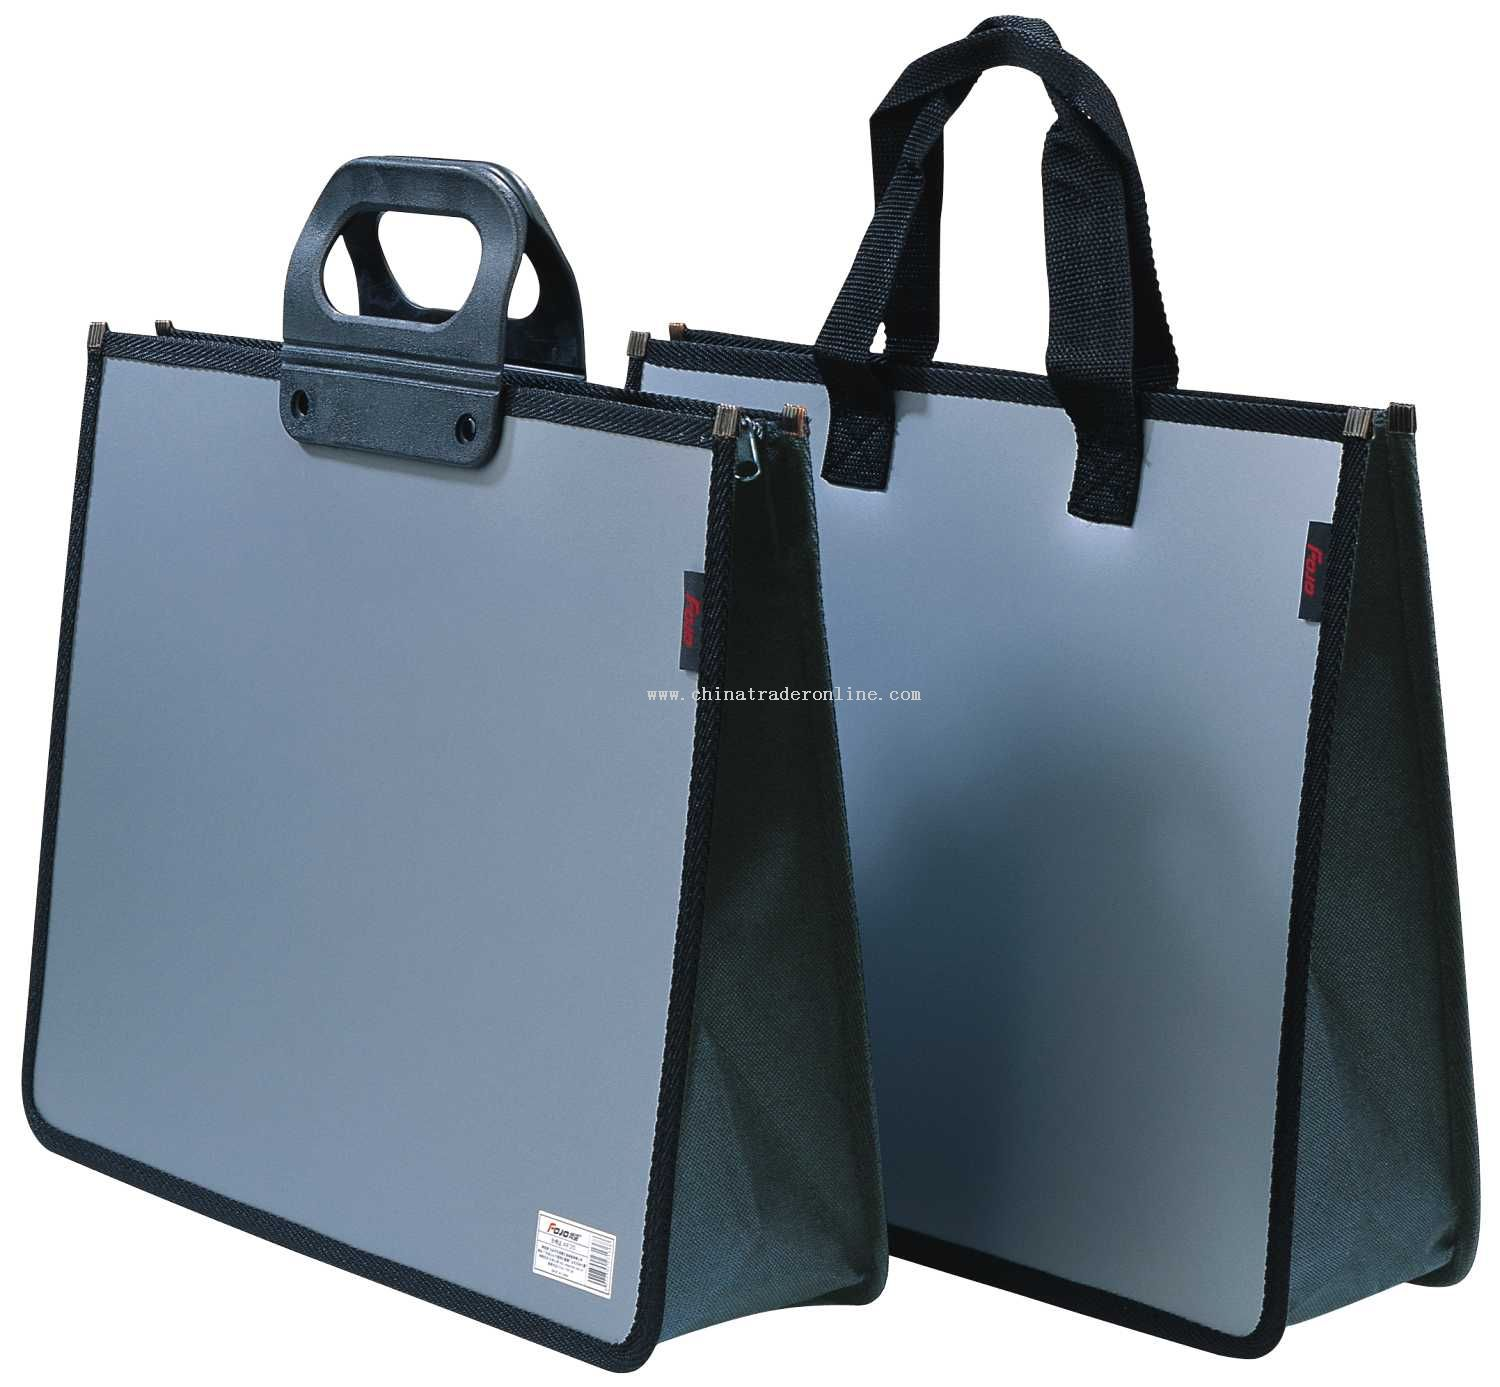 Portable business bag from China